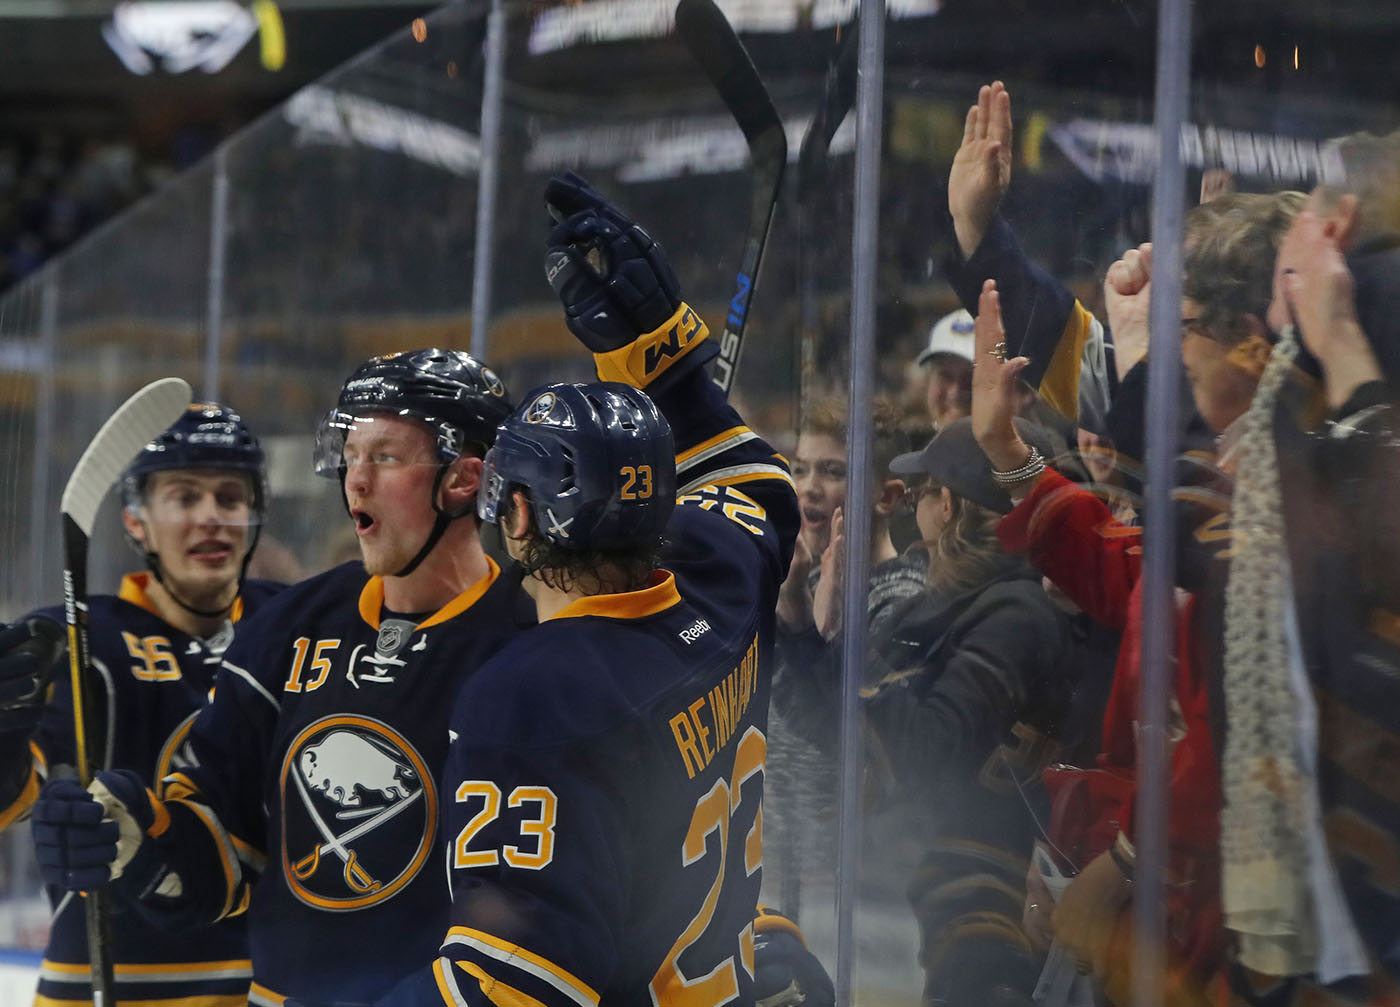 Buffalo Sabres jack EIchel celebrates his first goal of the game against the New York Rangers during third period action at the Key Bank Center on Thursday, Dec. 1, 2016. (Harry Scull Jr./Buffalo News)